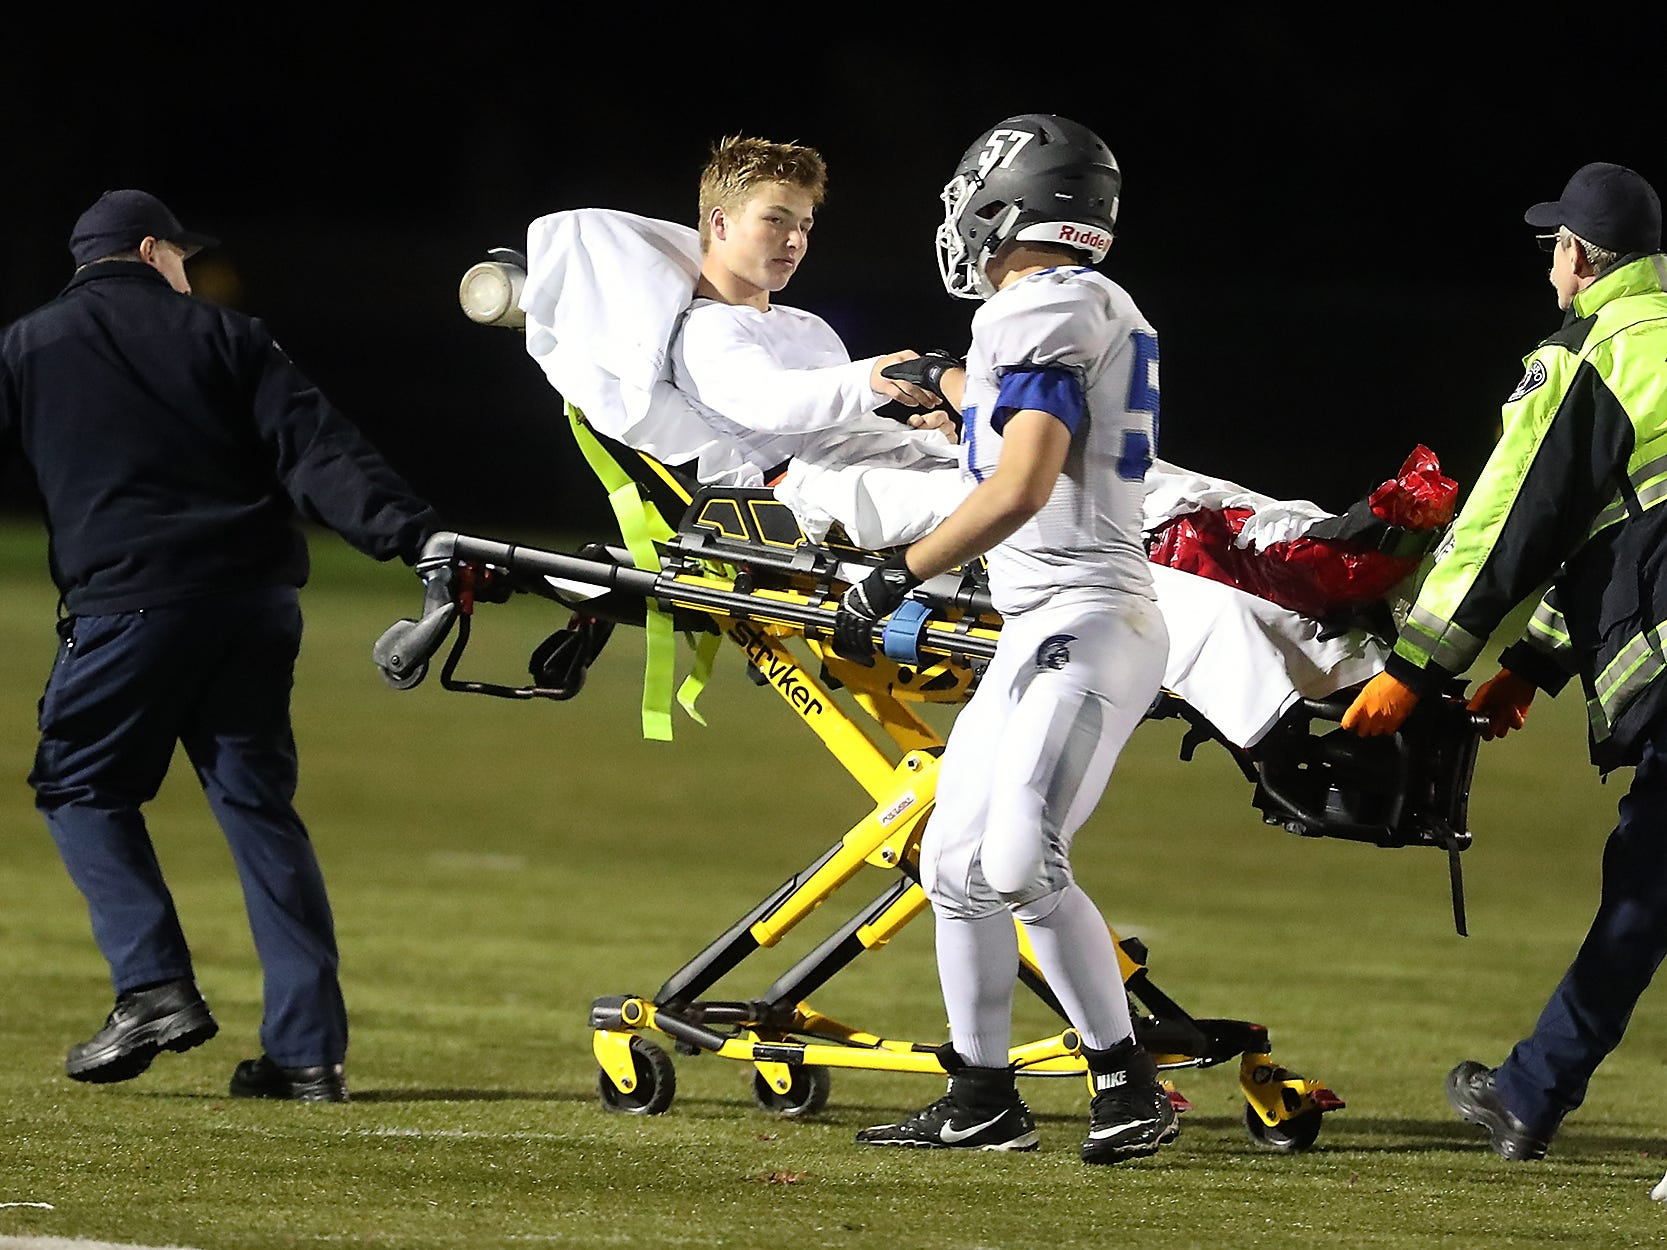 Olympic's Jonah Maatouk shakes hands with Colton Bower as Bower is wheeled off the field on a stretcher by the Poulsbo Fire Department after a hard hit during the first half of their game on Friday, October 26, 2018.